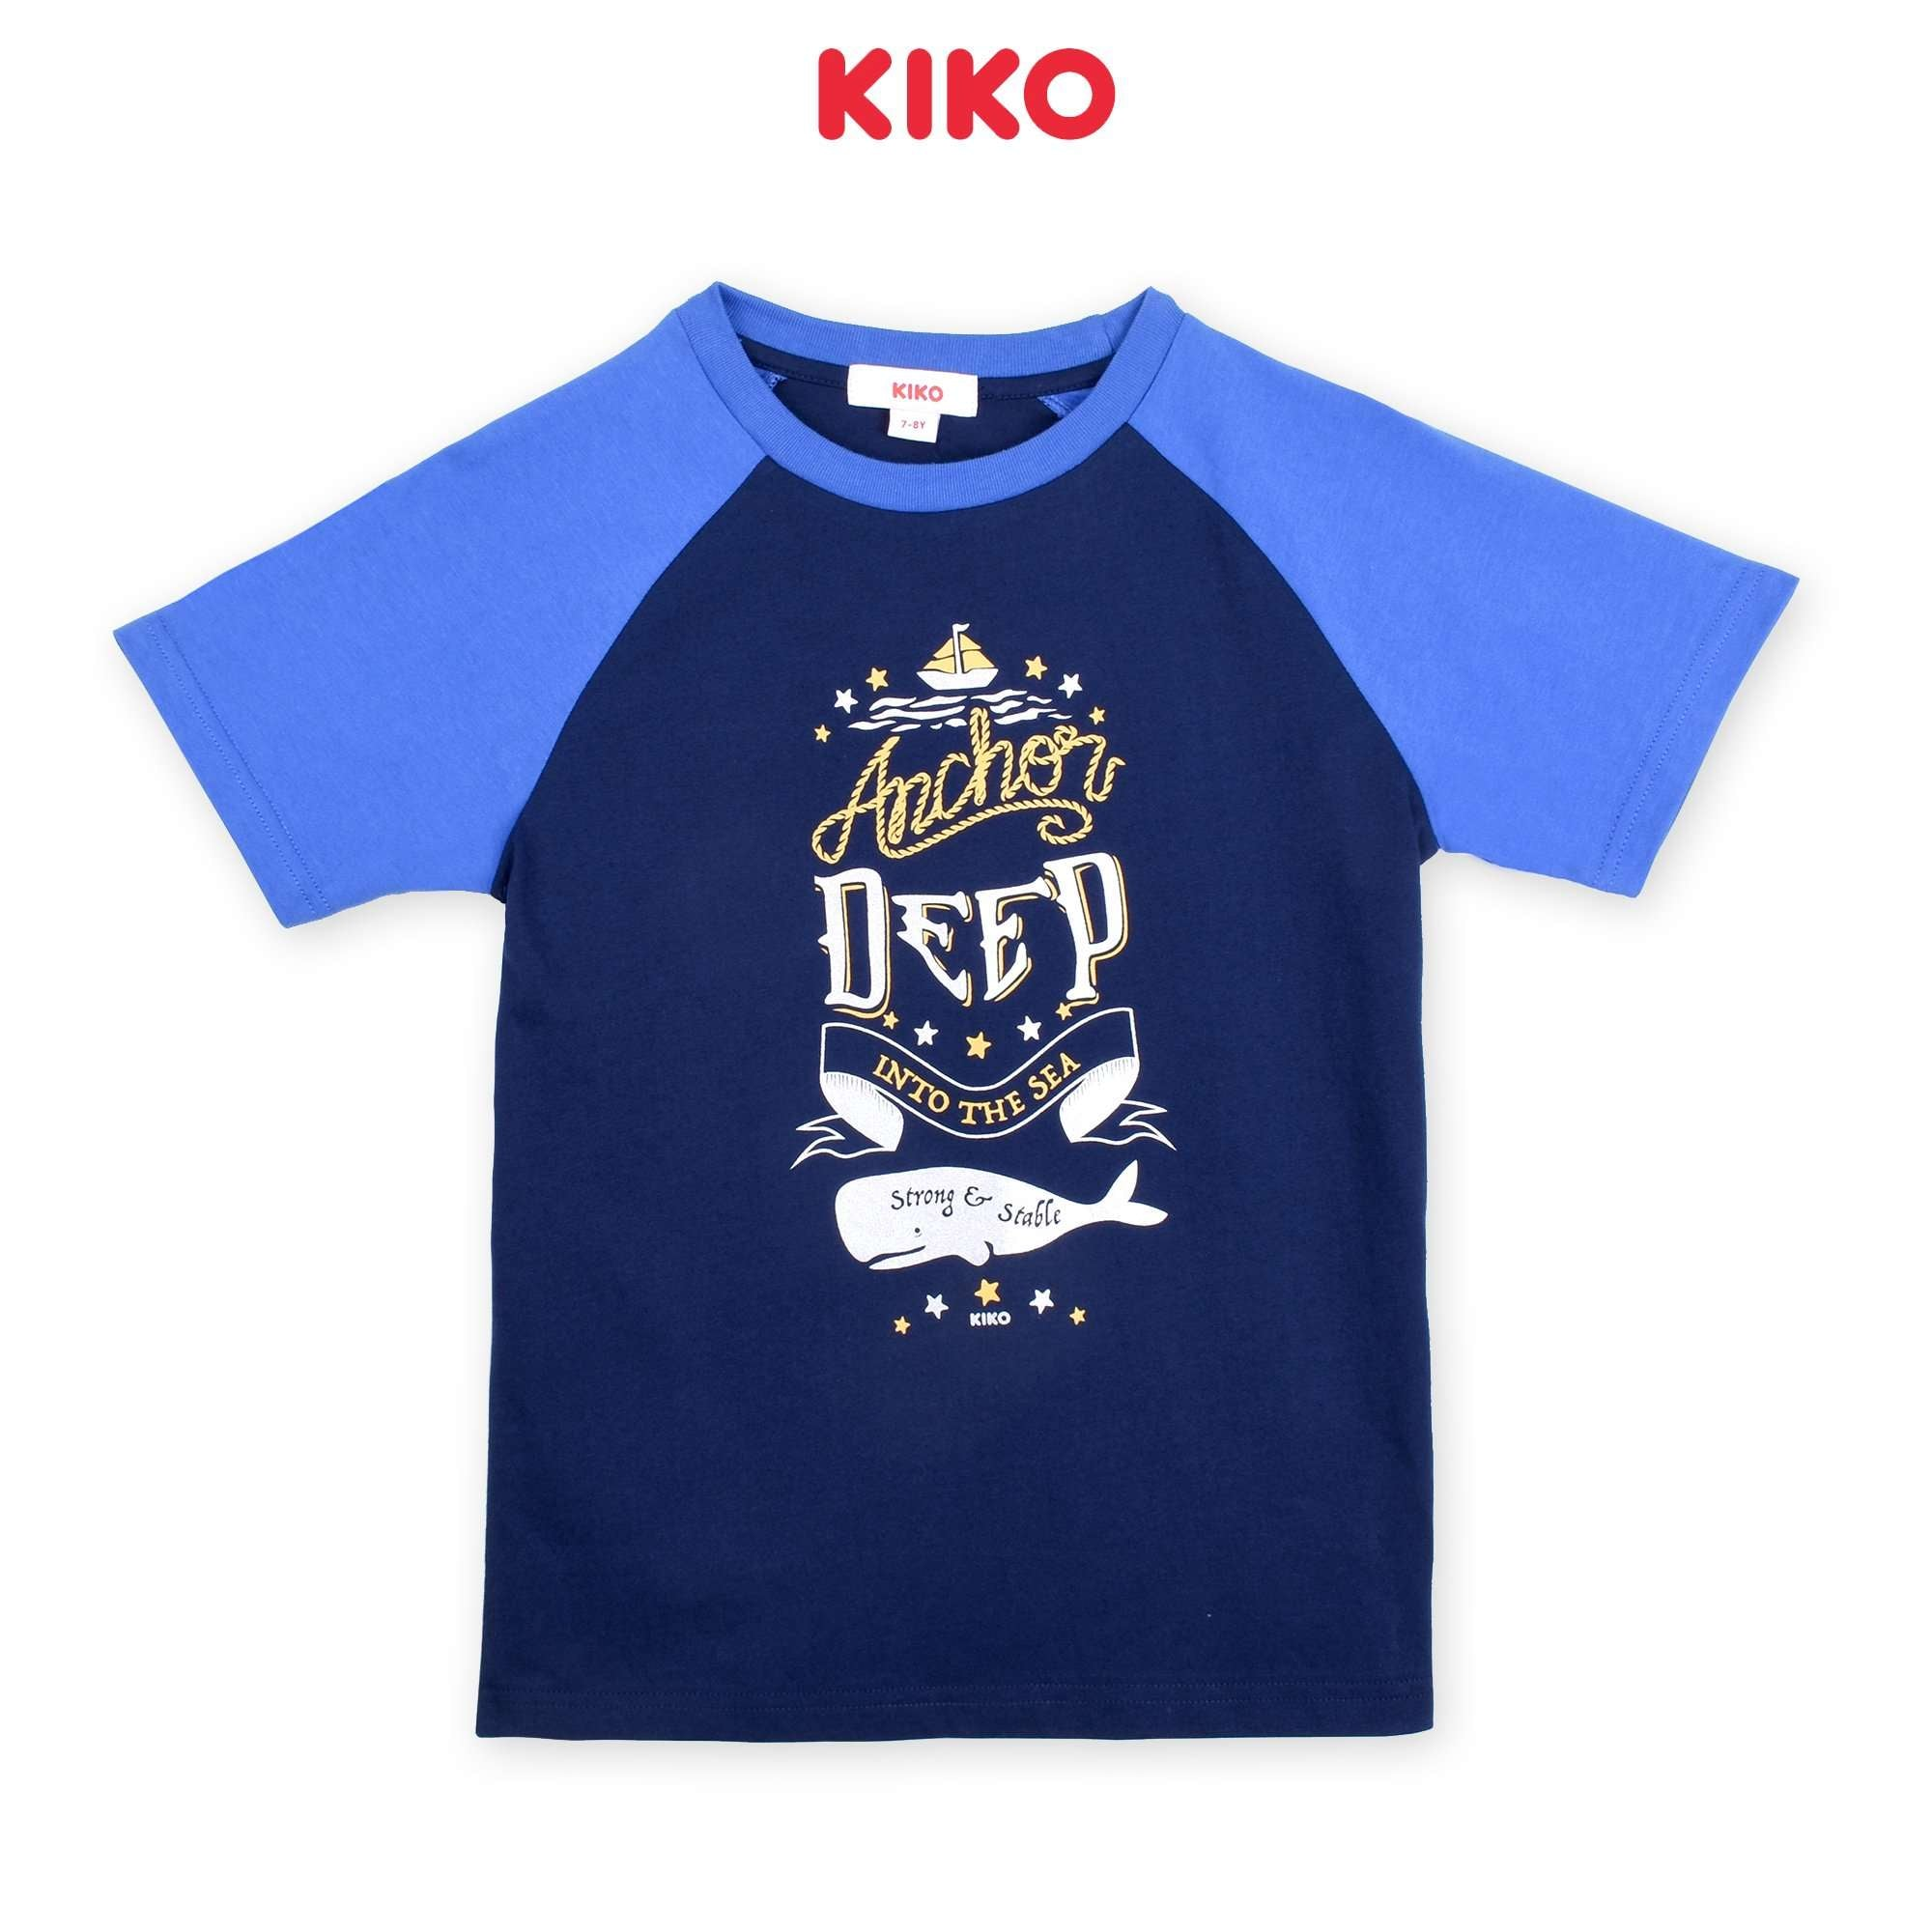 KIKO Boy Short Sleeve Tee - Blue K923103-1116-L5 : Buy KIKO online at CMG.MY